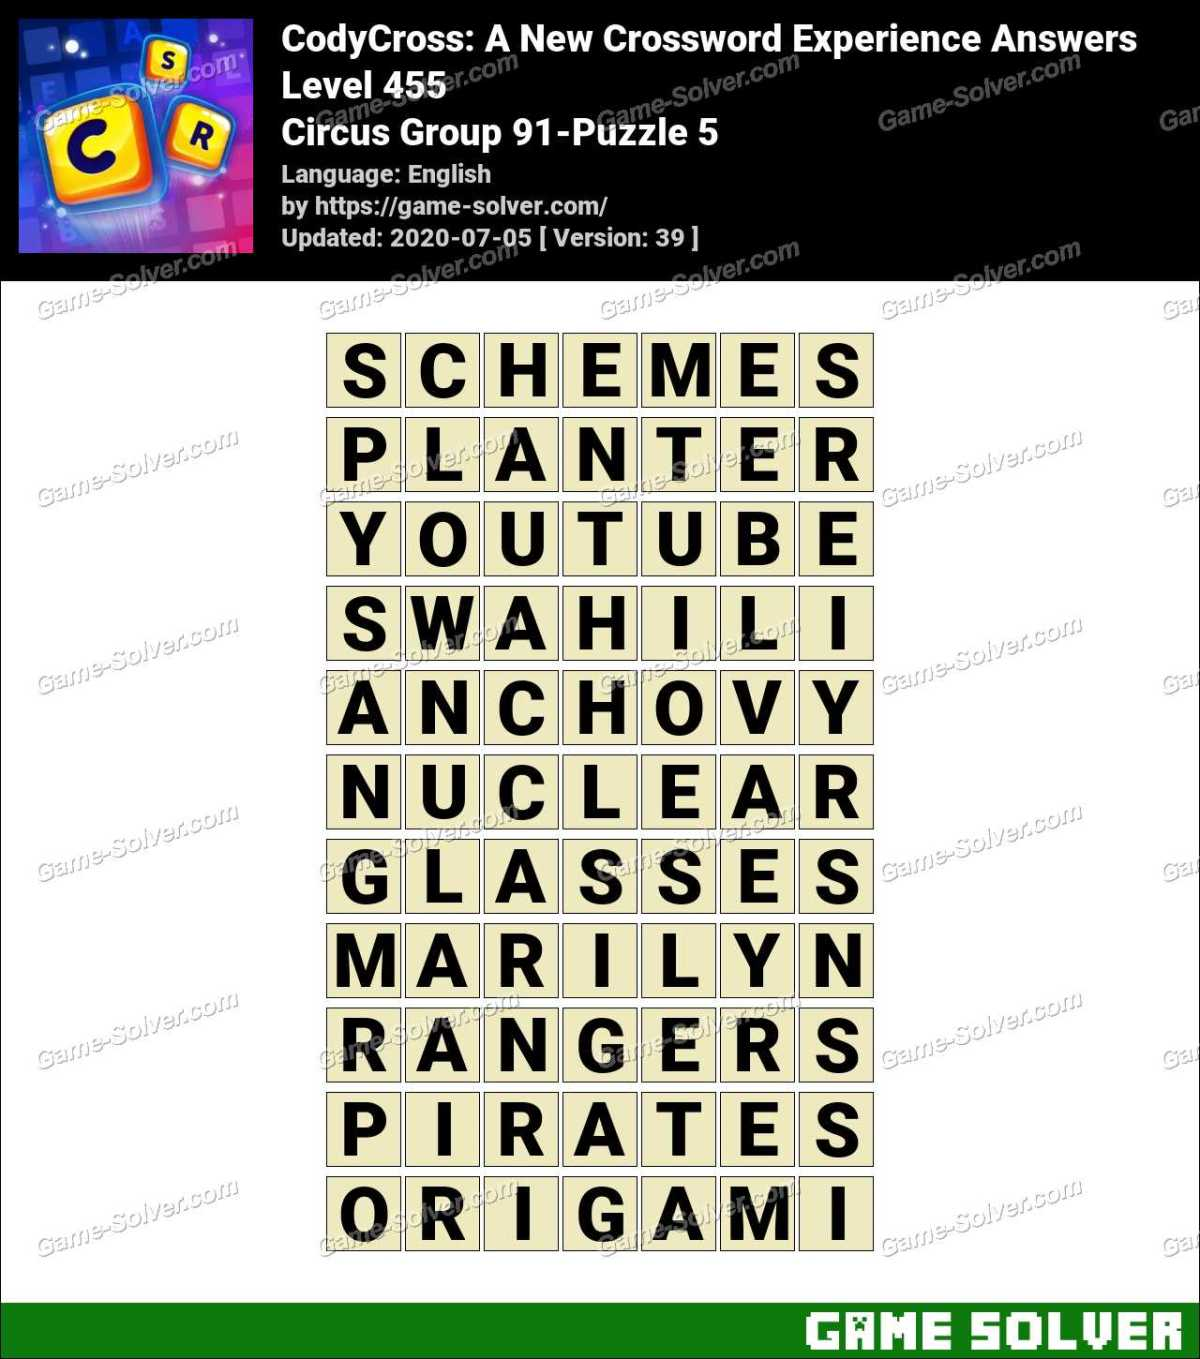 CodyCross Circus Group 91-Puzzle 5 Answers